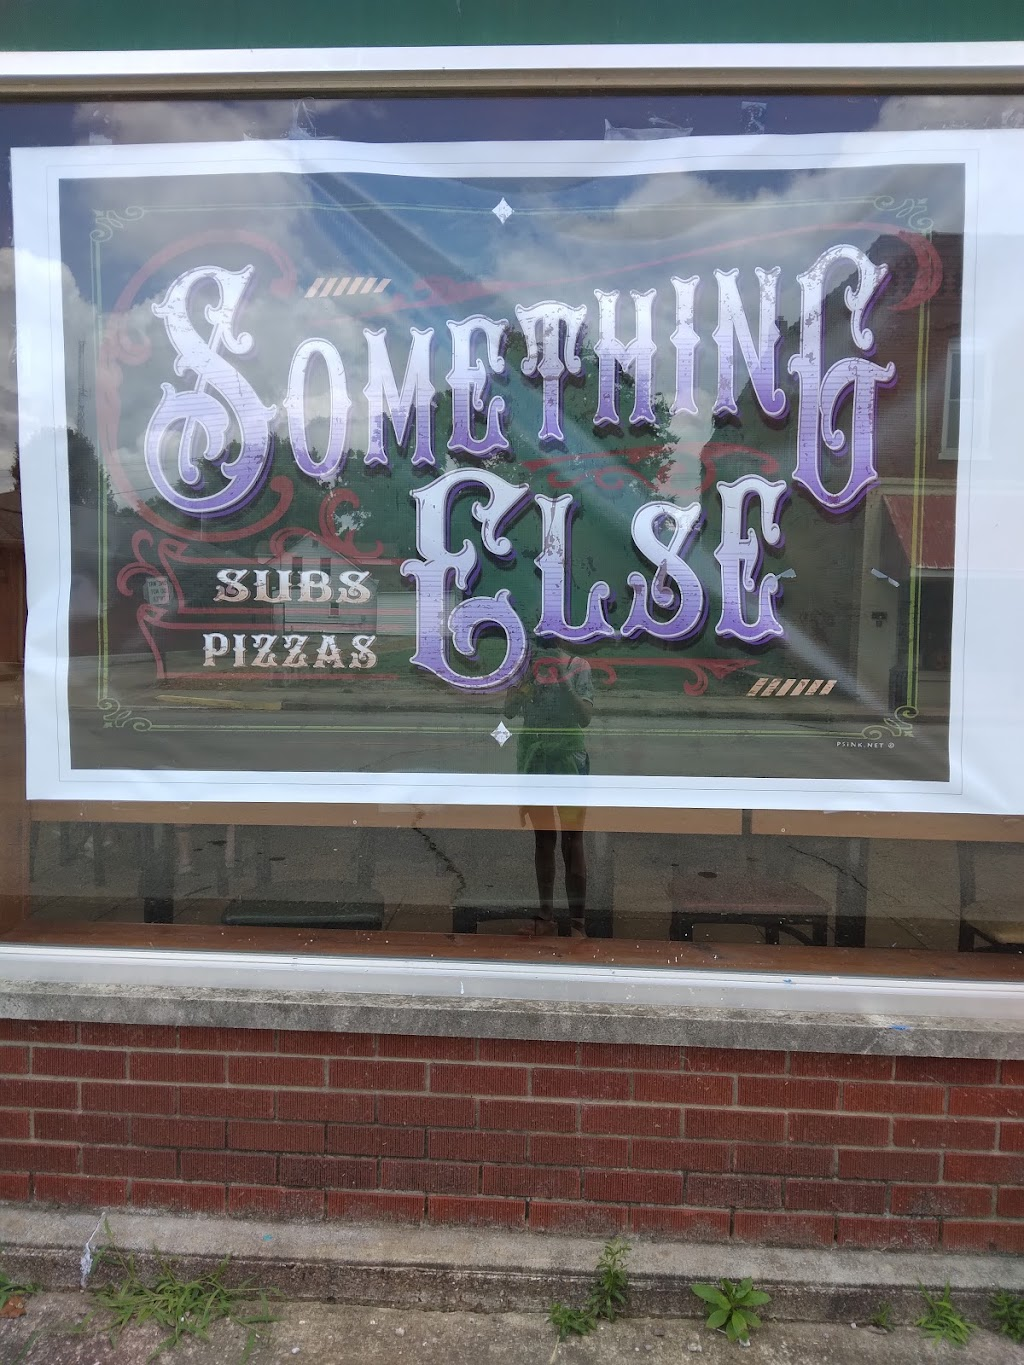 Something Else Subs and Pizzas | restaurant | 118 E Main St #304, Golconda, IL 62938, USA | 6186385441 OR +1 618-638-5441